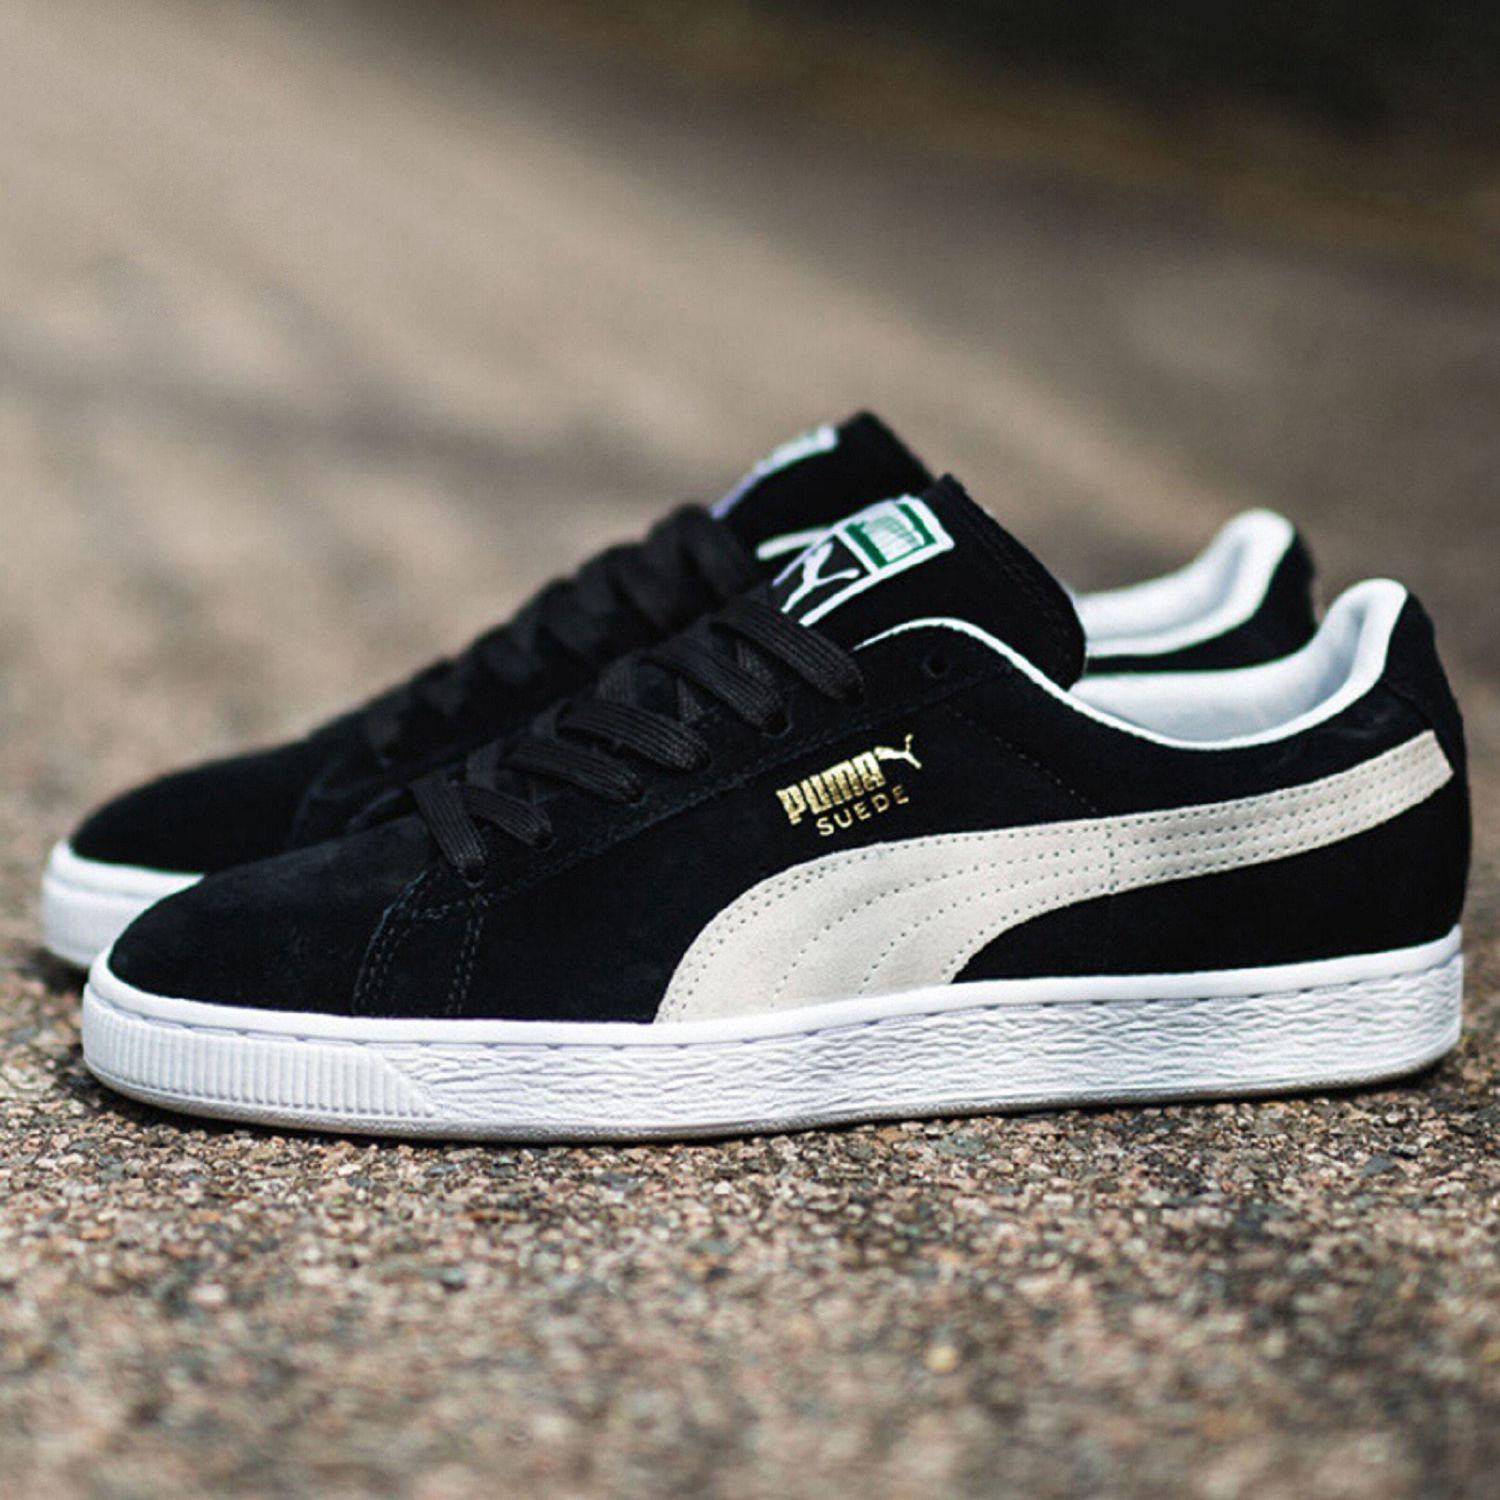 new product 81b1c dde86 PUMA Hummer men s shoes women s shoes 2019 summer Suede low-top sneakers  couple casual shoes shoes 352634